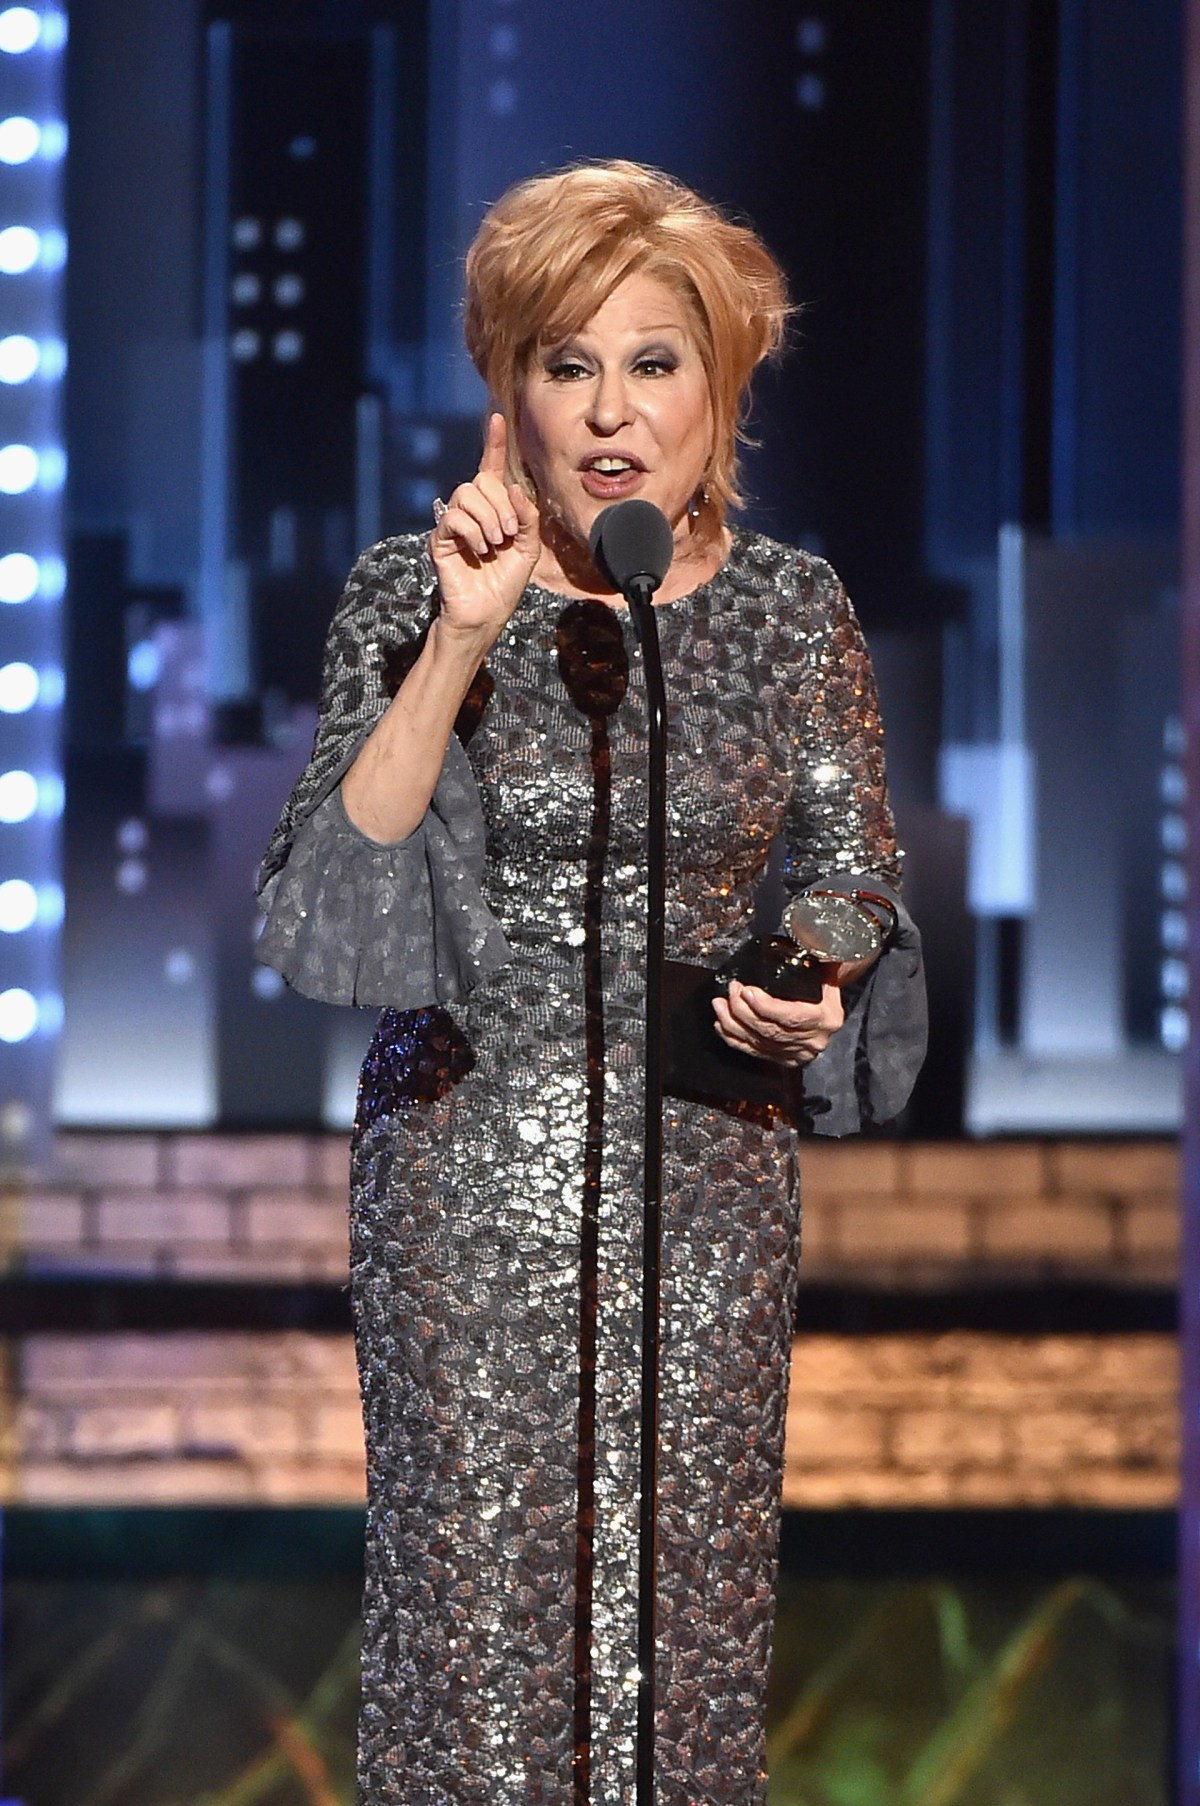 , Rabid Anti-Conservative Bette Midler to Be Kennedy Center Honoree, Nzuchi Times Breitbart